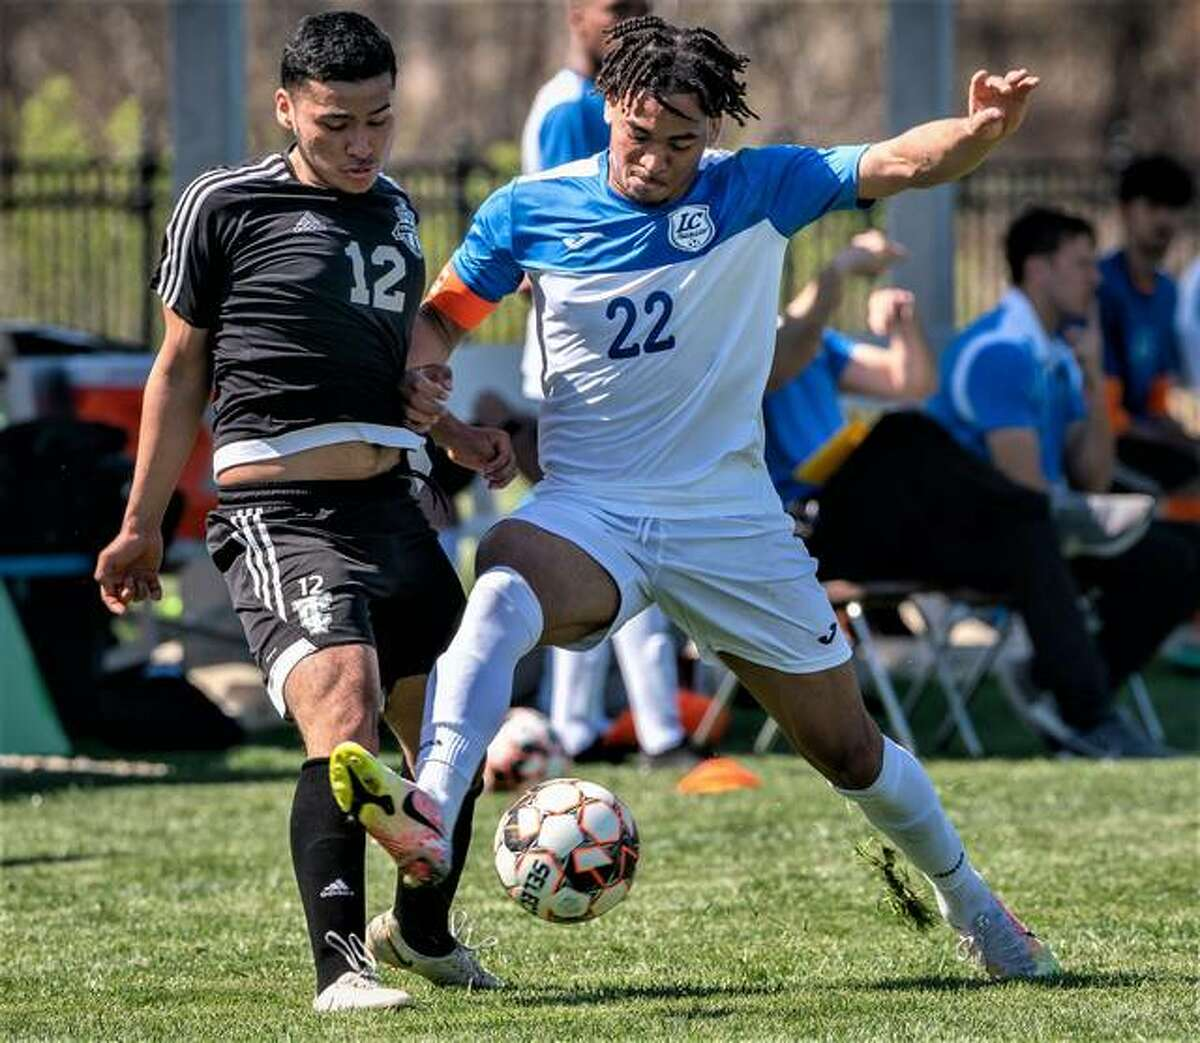 Spencer Barber of Lewis and Clark (22) scored a pair of first-half goals to help the Trailblazers knock off rival Southwestern Illinois College 5-0 Sunday at Belleville Althoff High School.